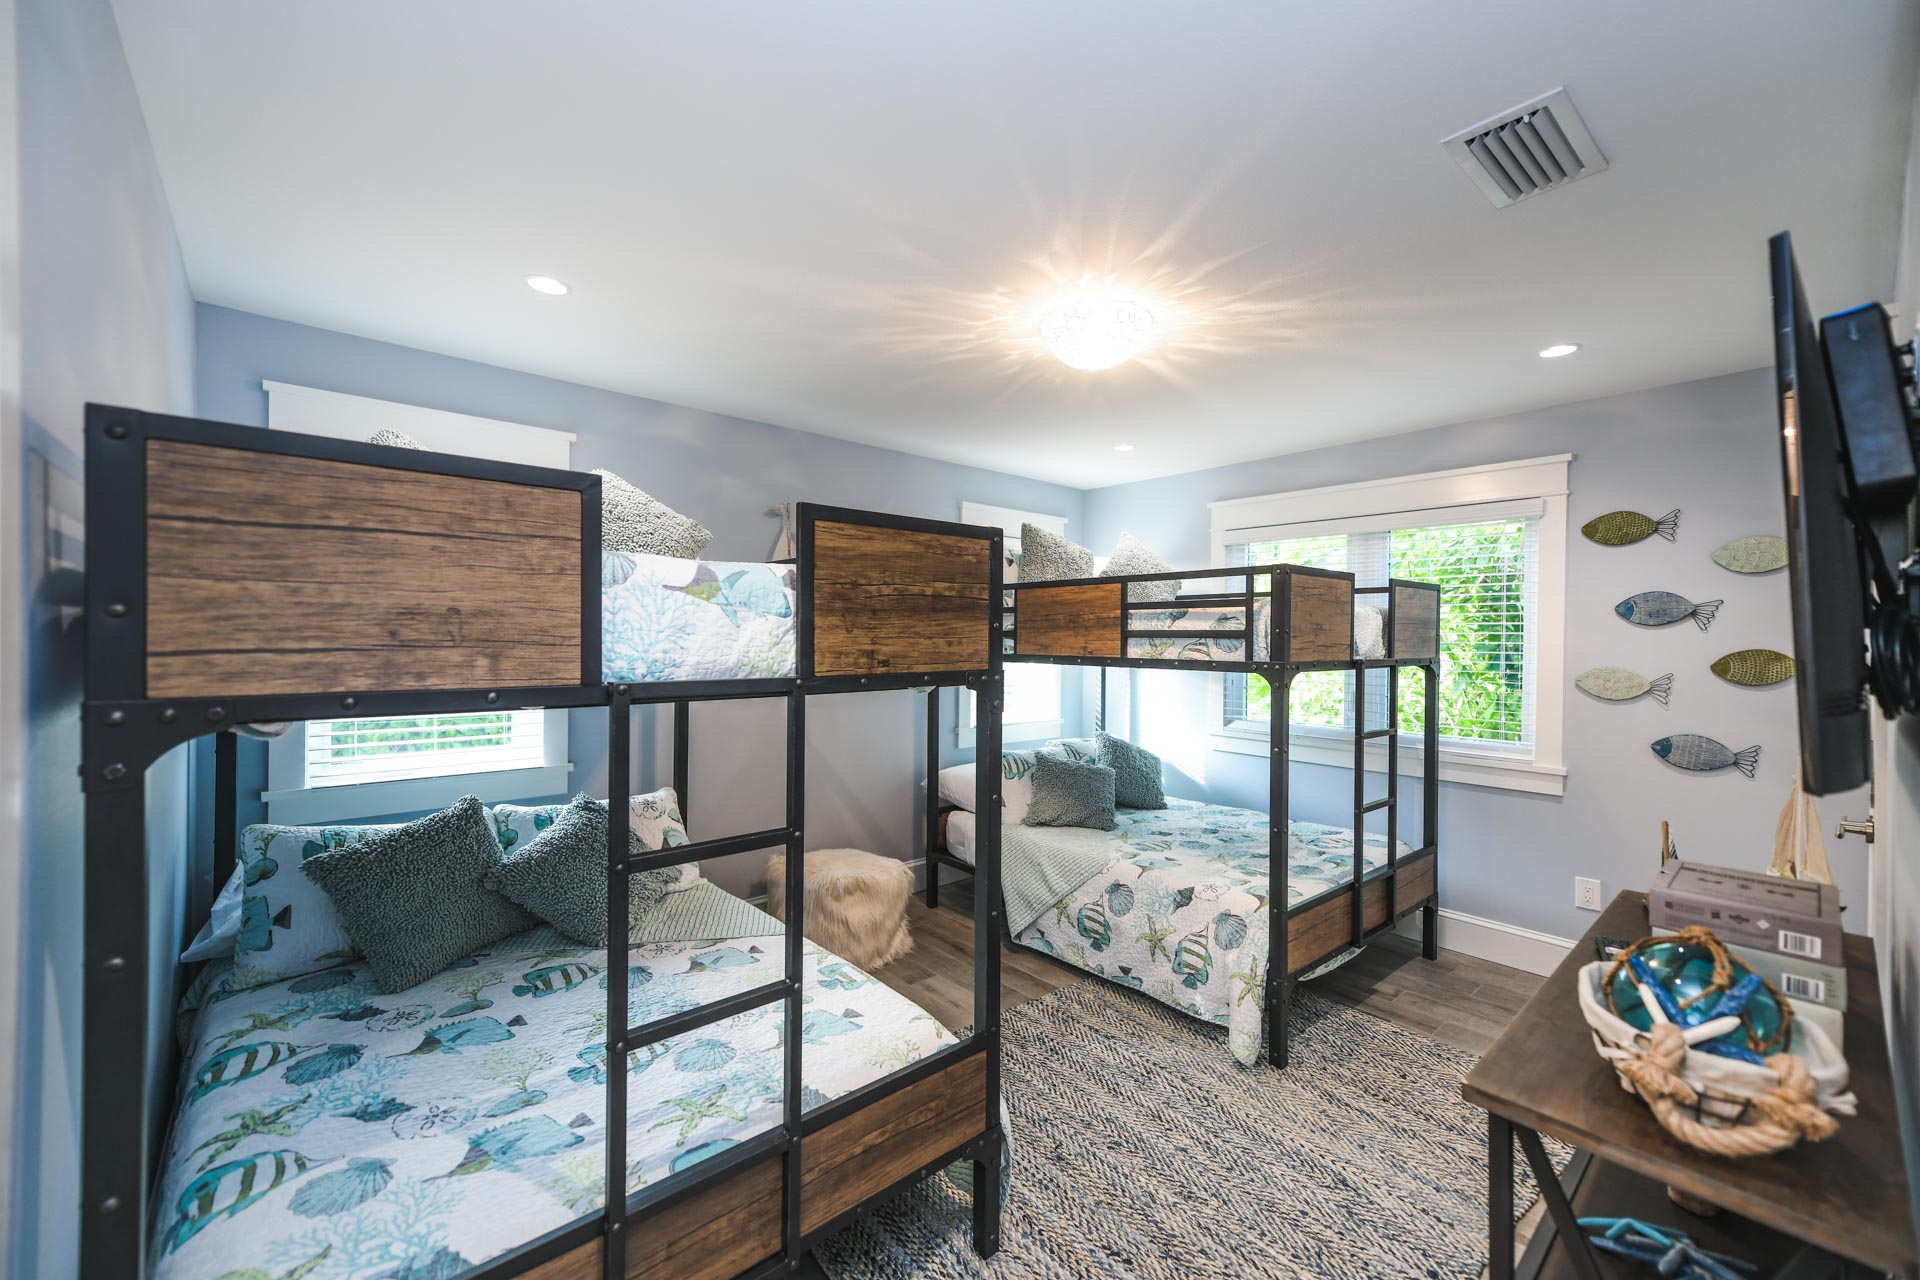 EXAMPLE- Bunk Room w/ 2 Full over Full Bunk Beds w/ Trundles